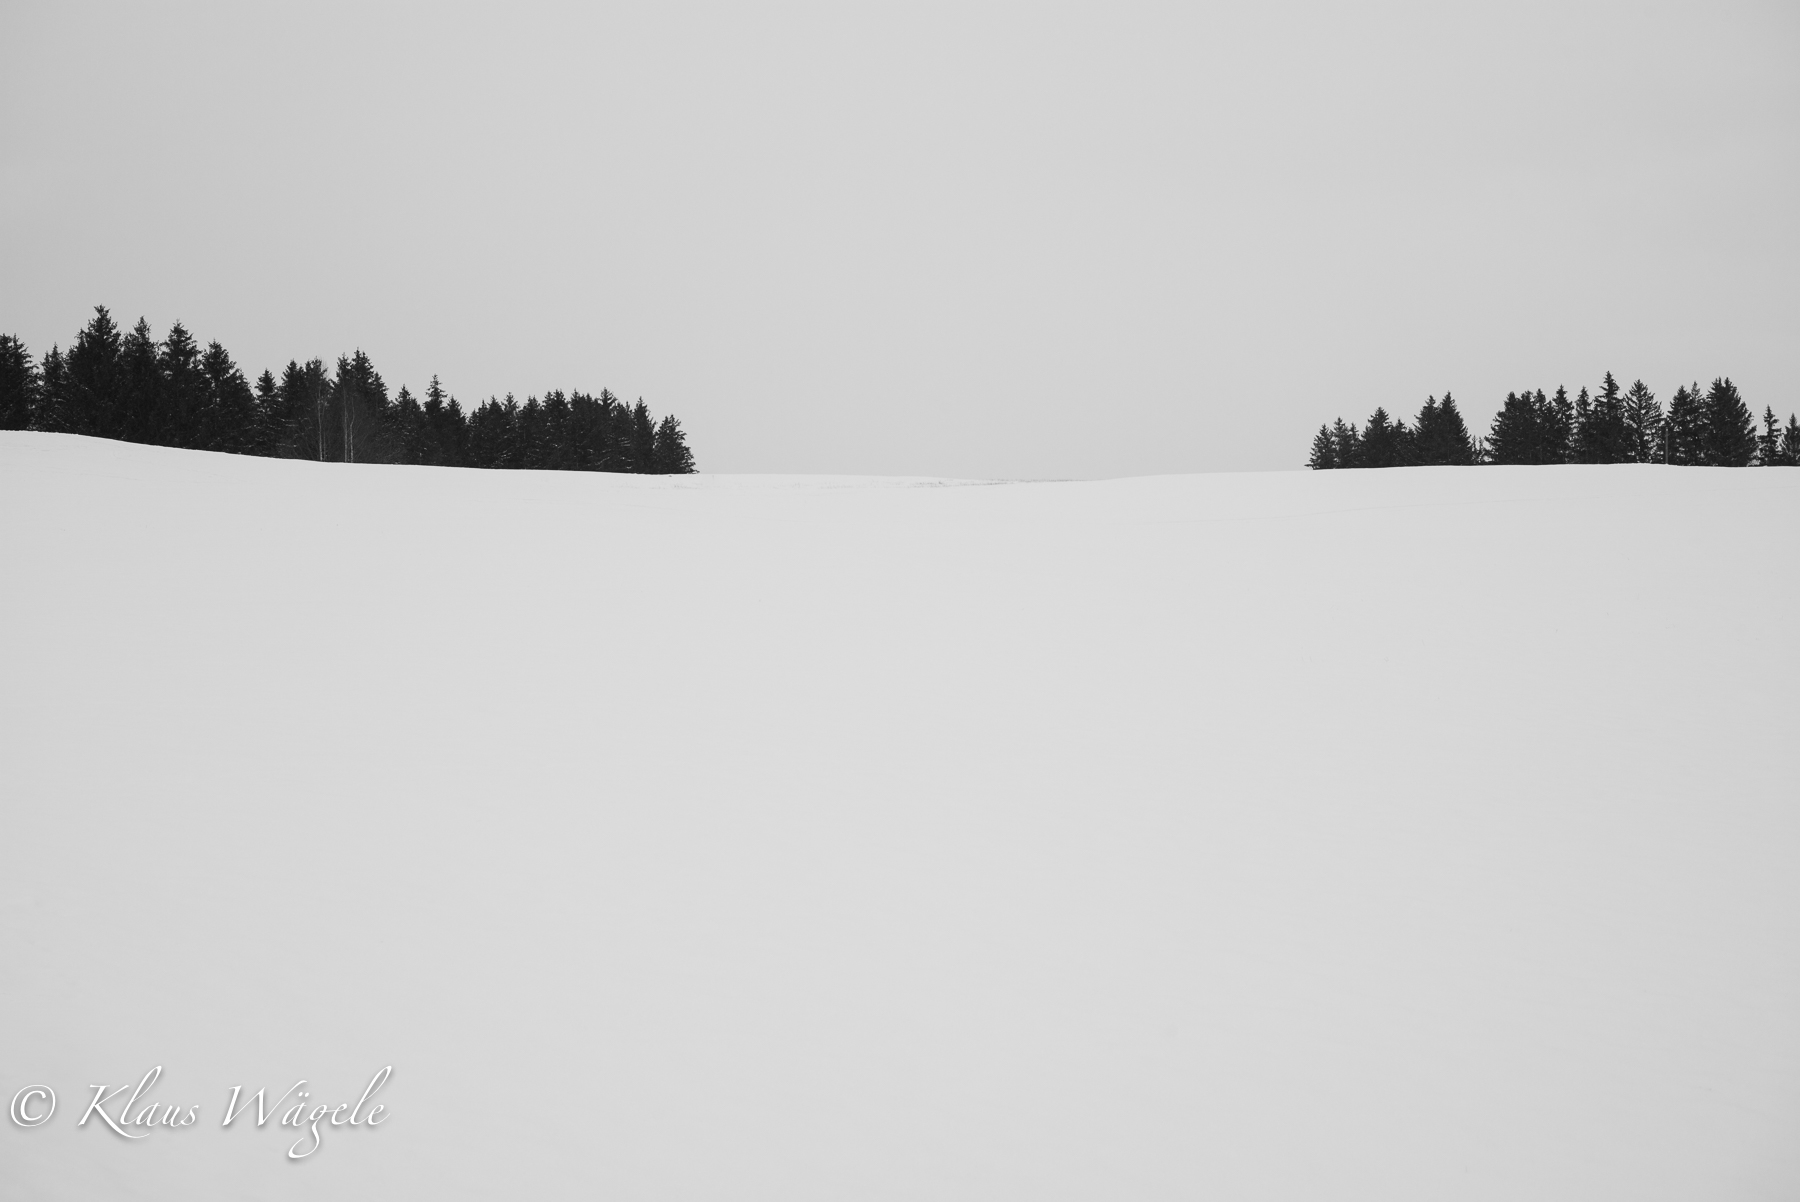 Snow (Bavaria, Germany)